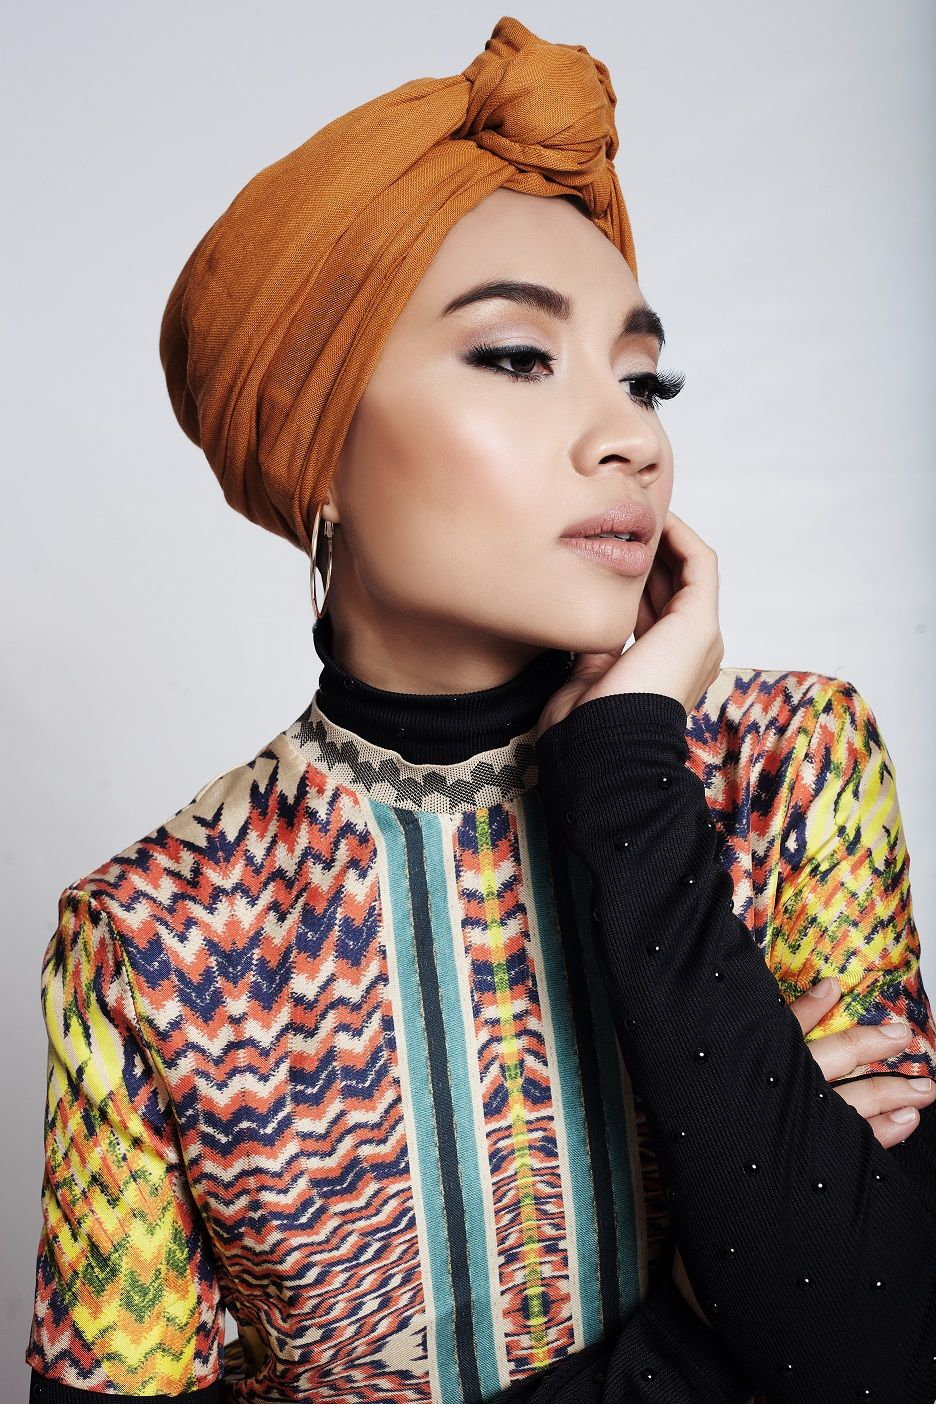 Interview: Yuna Discusses Cultural Influences & Being A Malaysian Musical Icon - Saint Heron